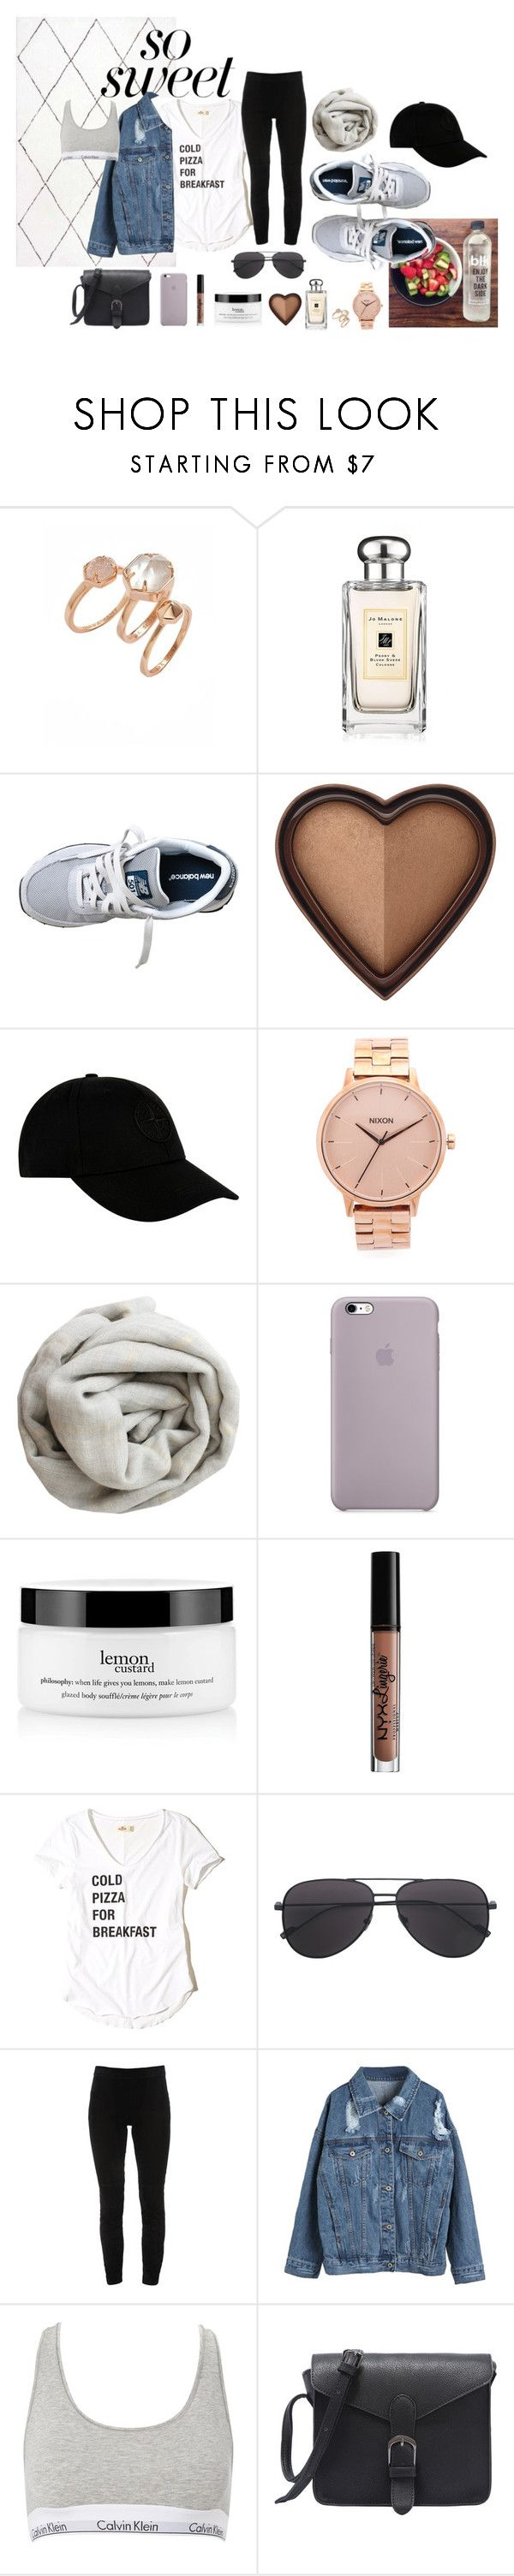 """Untitled #19"" by mjbanks on Polyvore featuring Kendra Scott, Jo Malone, New Balance, Too Faced Cosmetics, STONE ISLAND, Brunello Cucinelli, philosophy, Charlotte Russe, Hollister Co. and Elie Tahari"